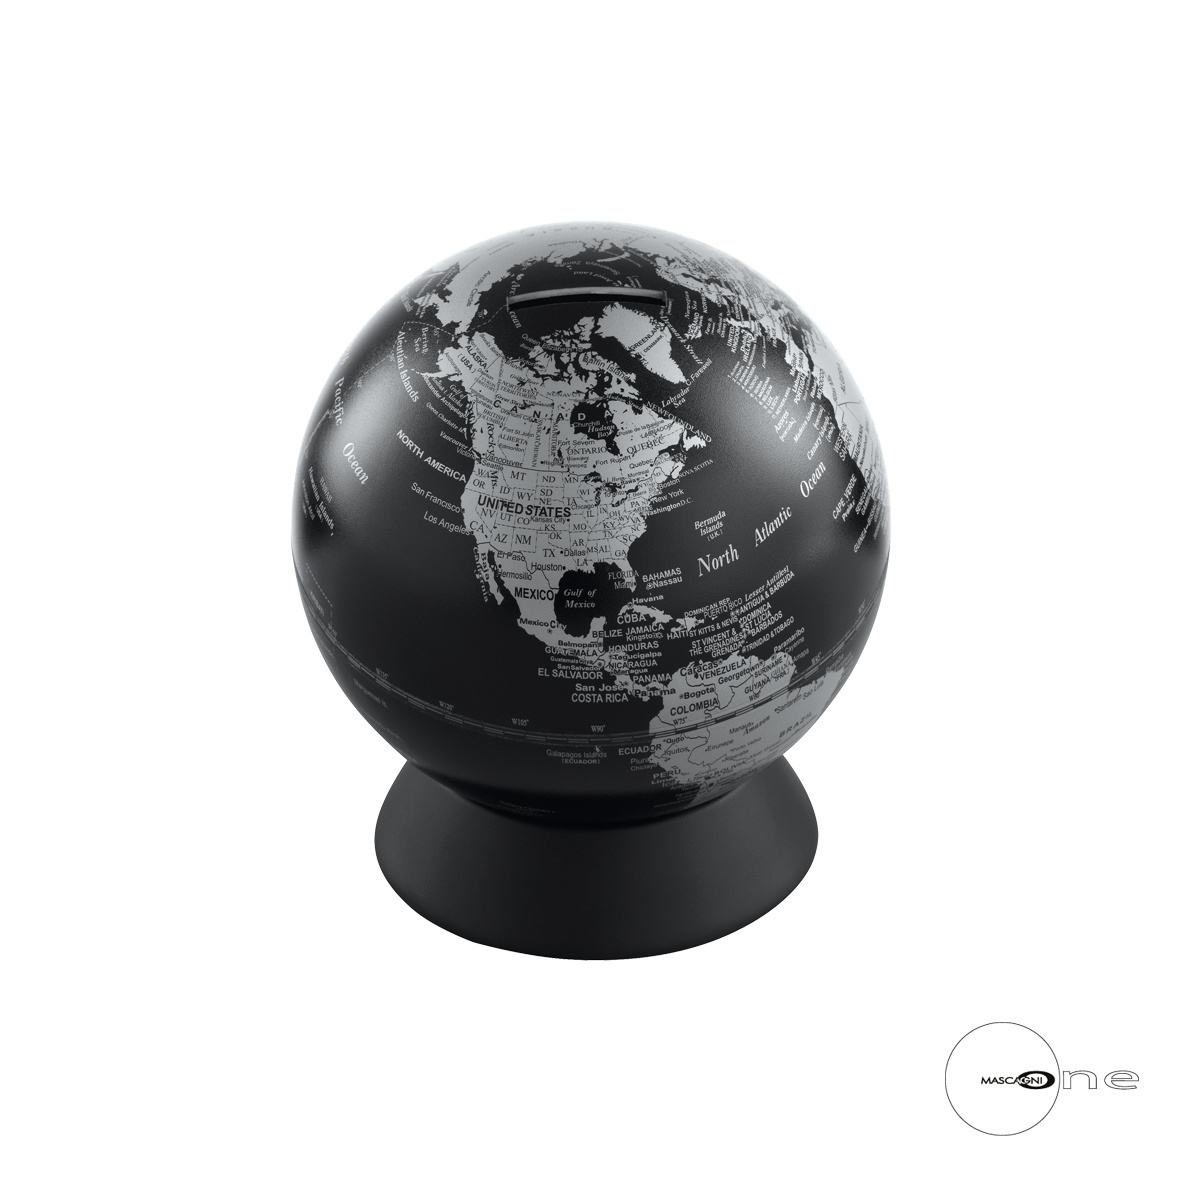 Art Mascagni O1355 MONEY BOX GLOBE - COL. SILVER